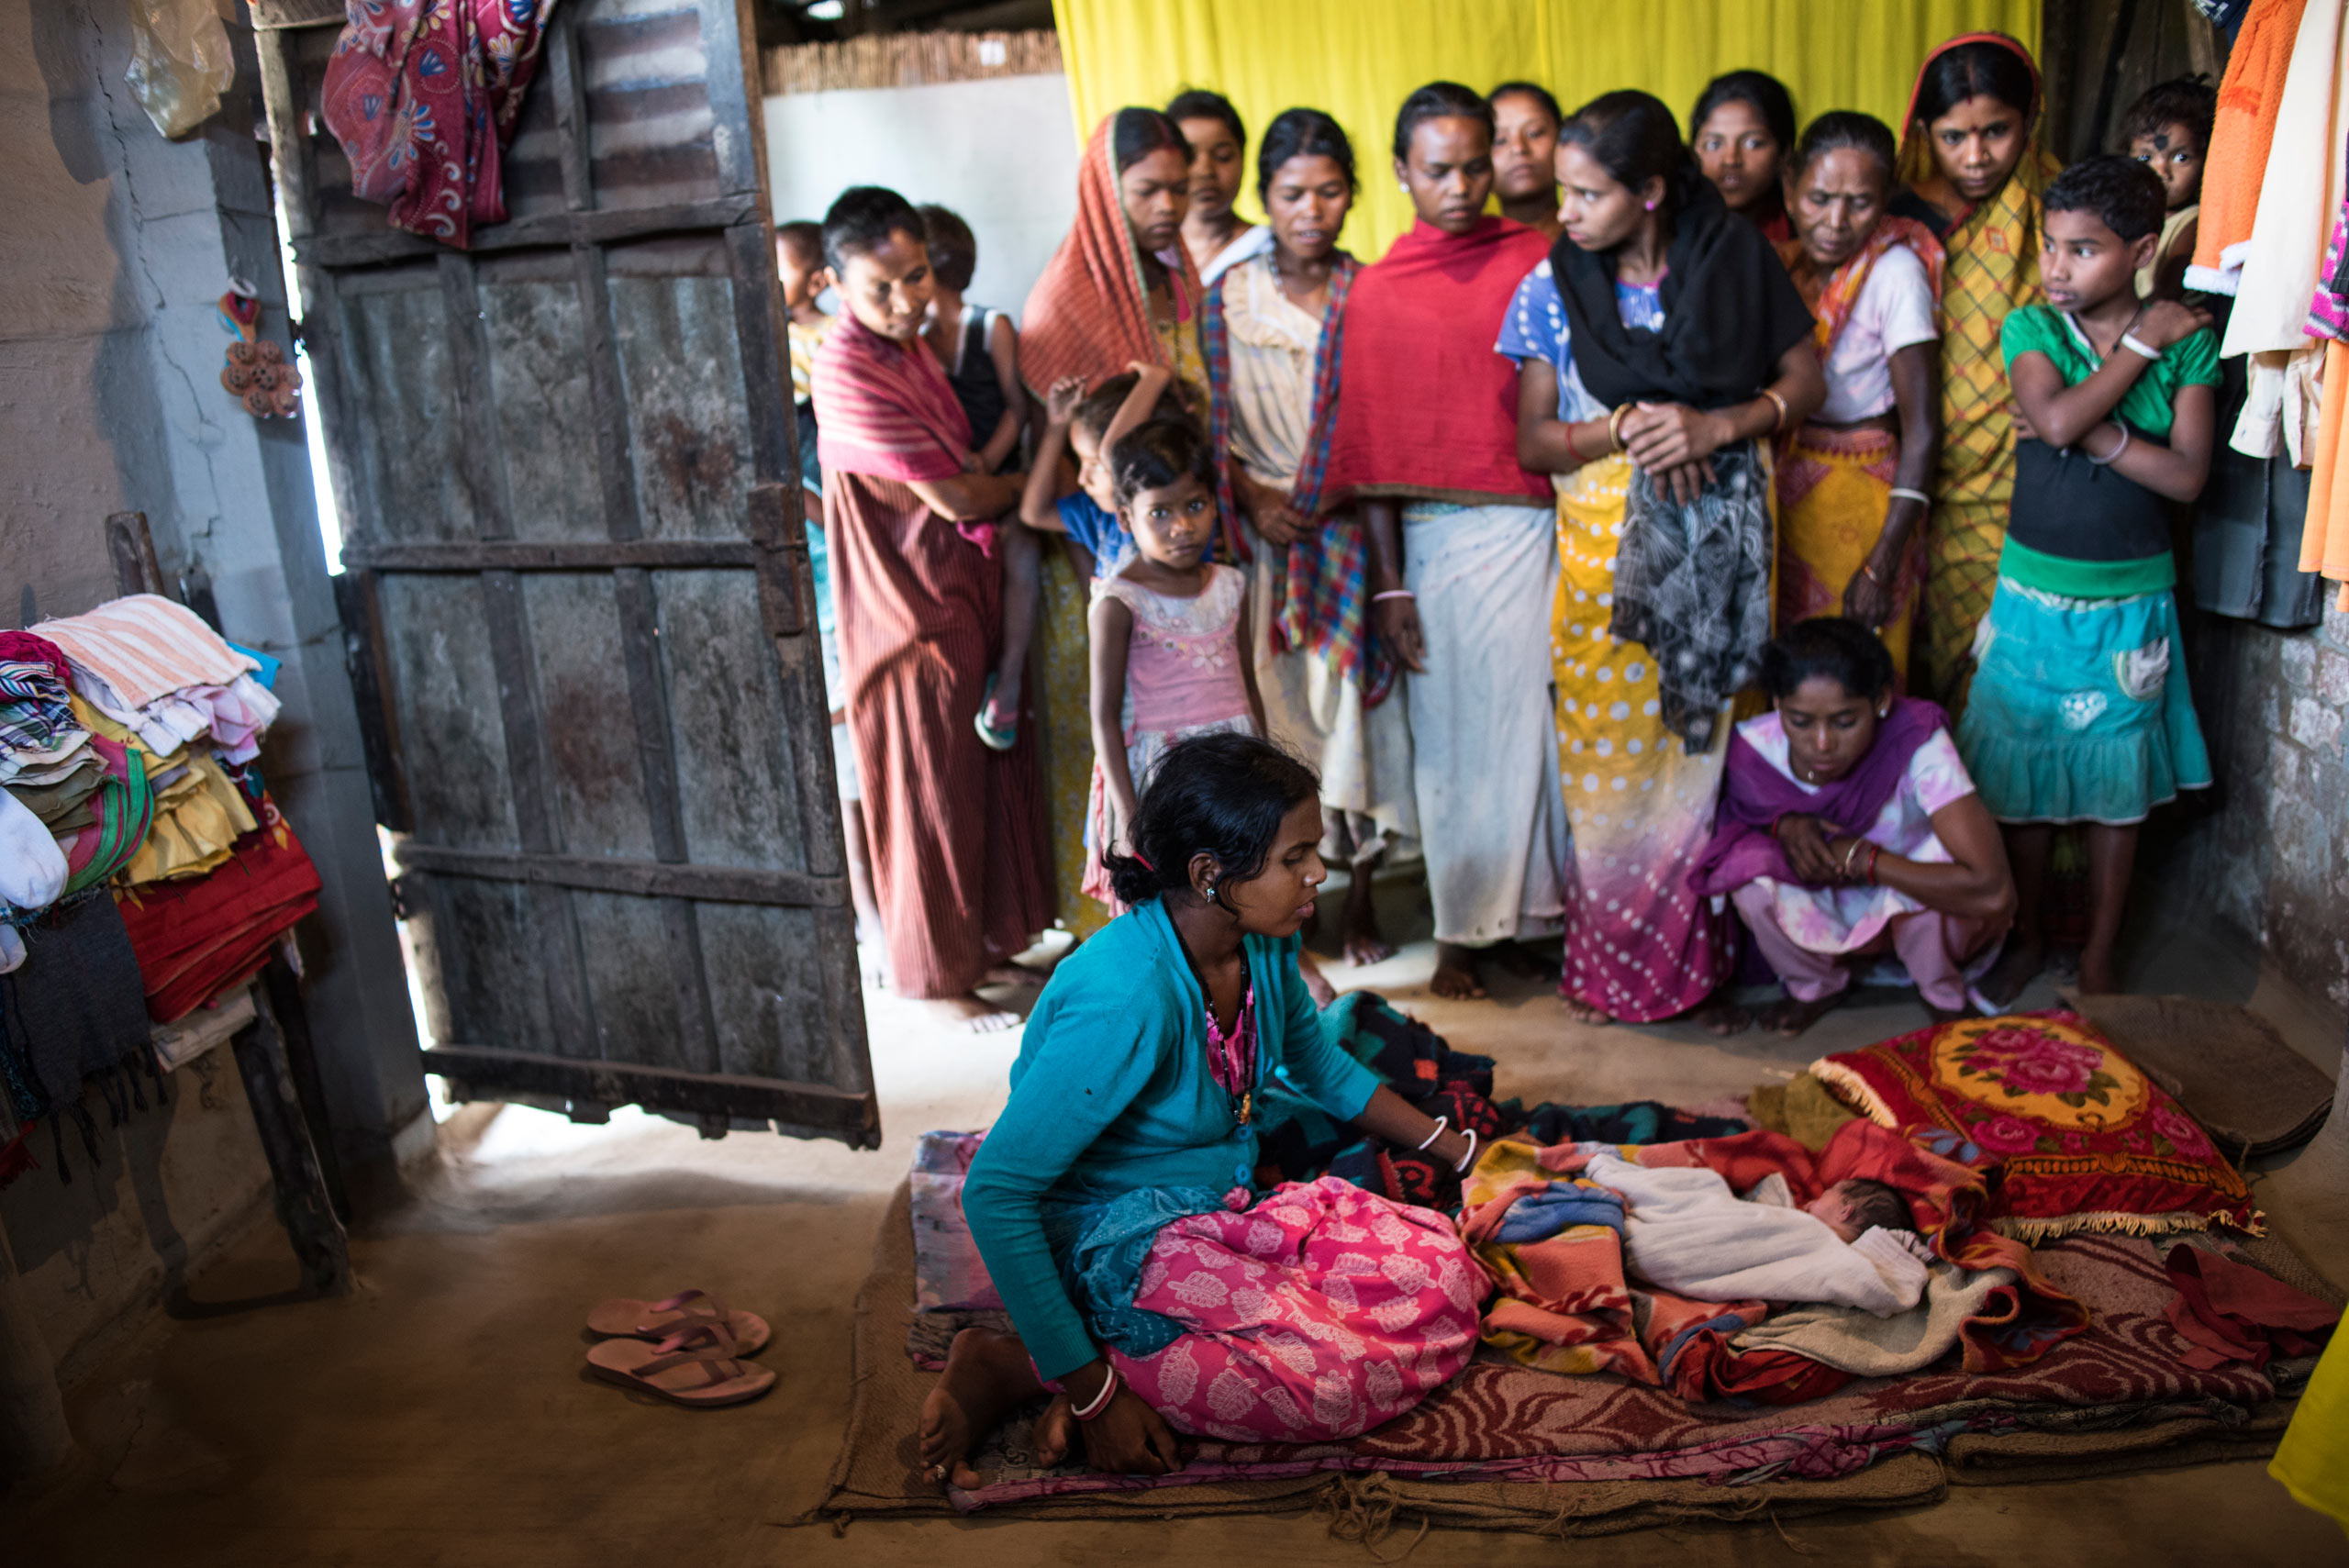 Resonate Bhumi sits over her severely deformed infant hours after giving birth at home, in the village of Holing Kata, in the Tinkharia plantation.  Bhumi's son was born with no arms and a cleft palate. Many women from the village came to look at the mother and child. Assam, India. April 8, 2015.